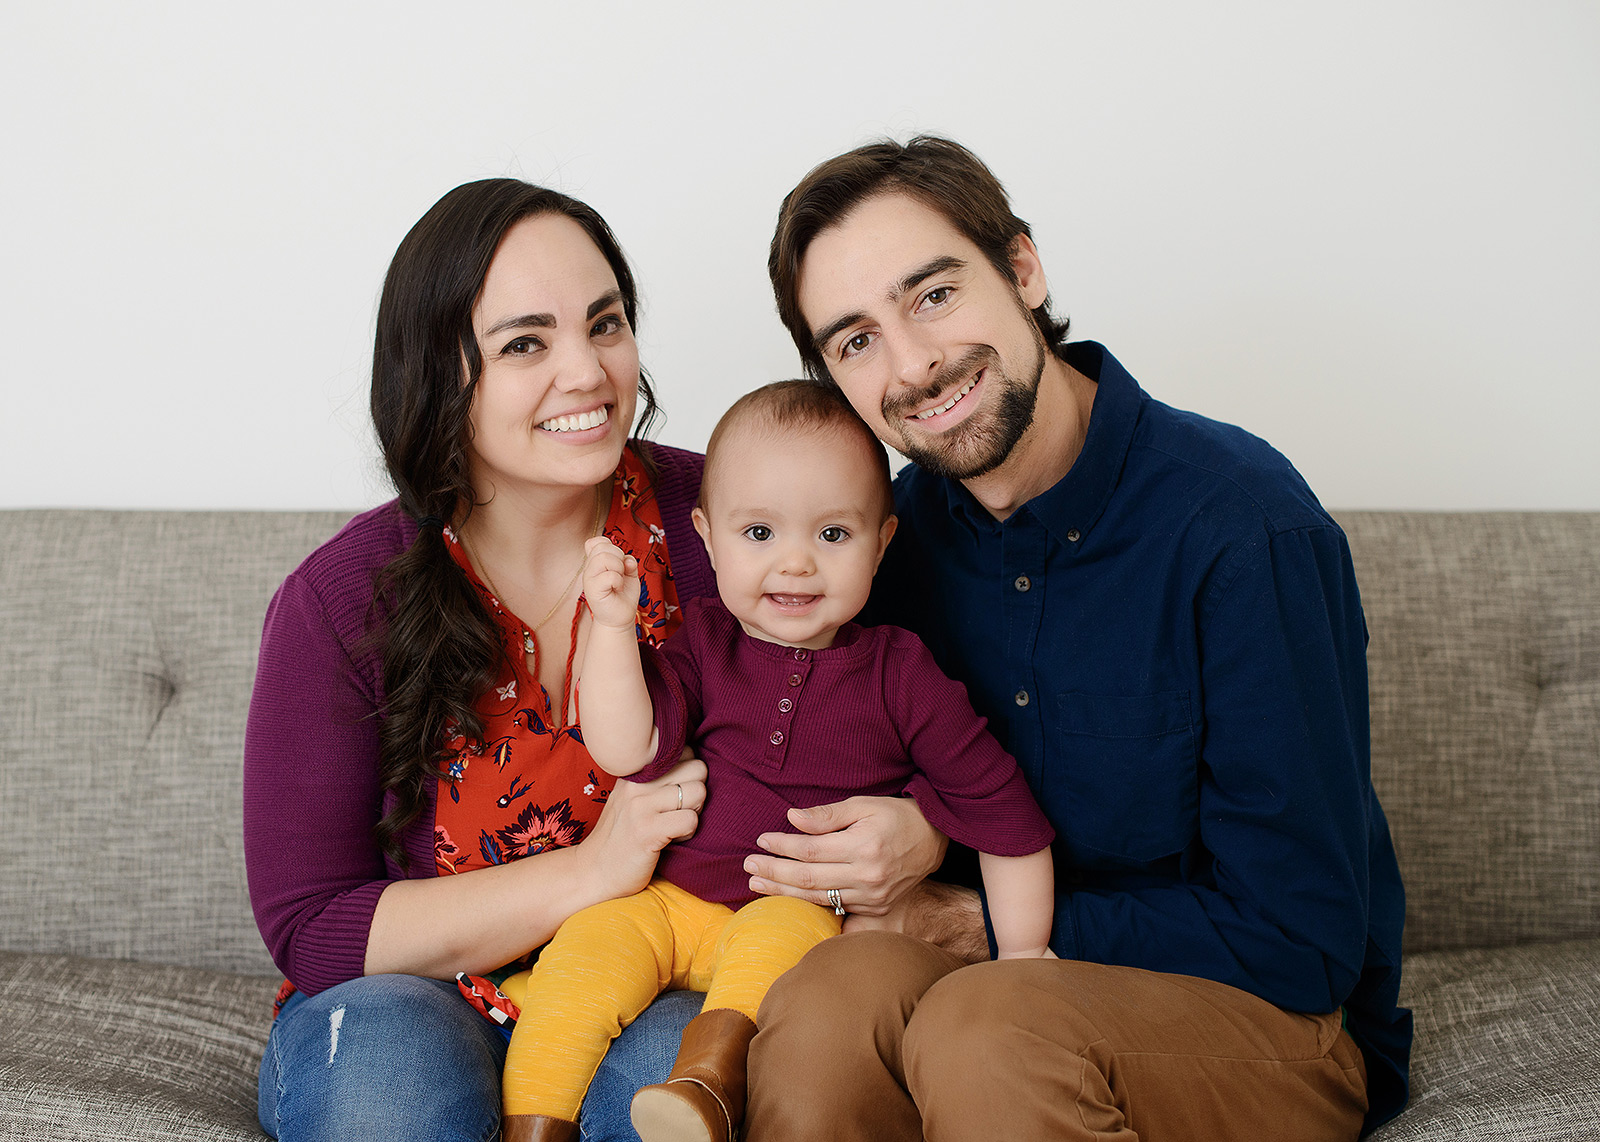 Family Studio Portrait with One Year Old Baby Girl